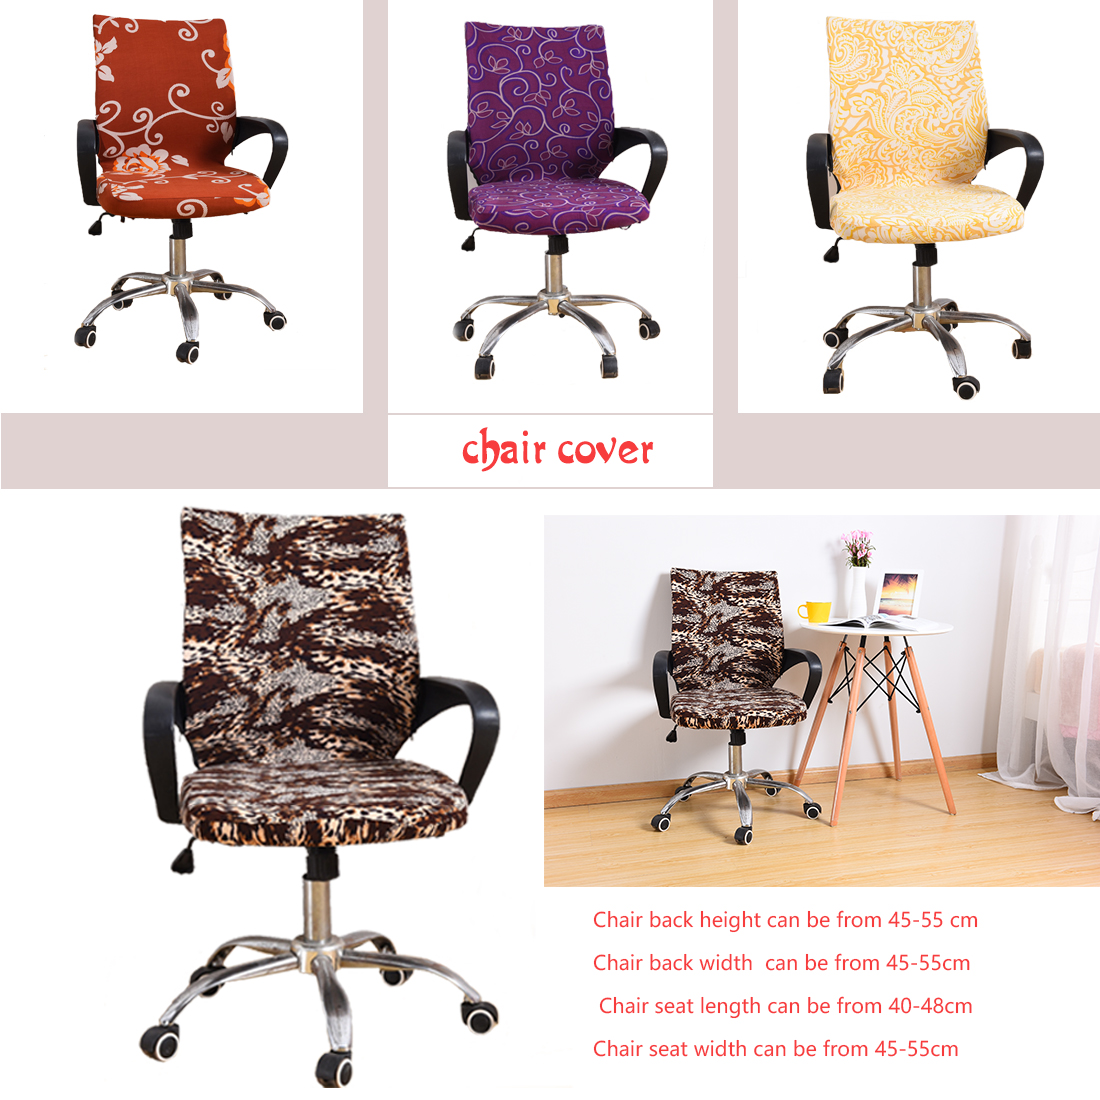 Seat Covers For Office Chairs Computer Chair Spandex Covers for Chairs Lycra Chair Stretch Case to Fit office Chairs